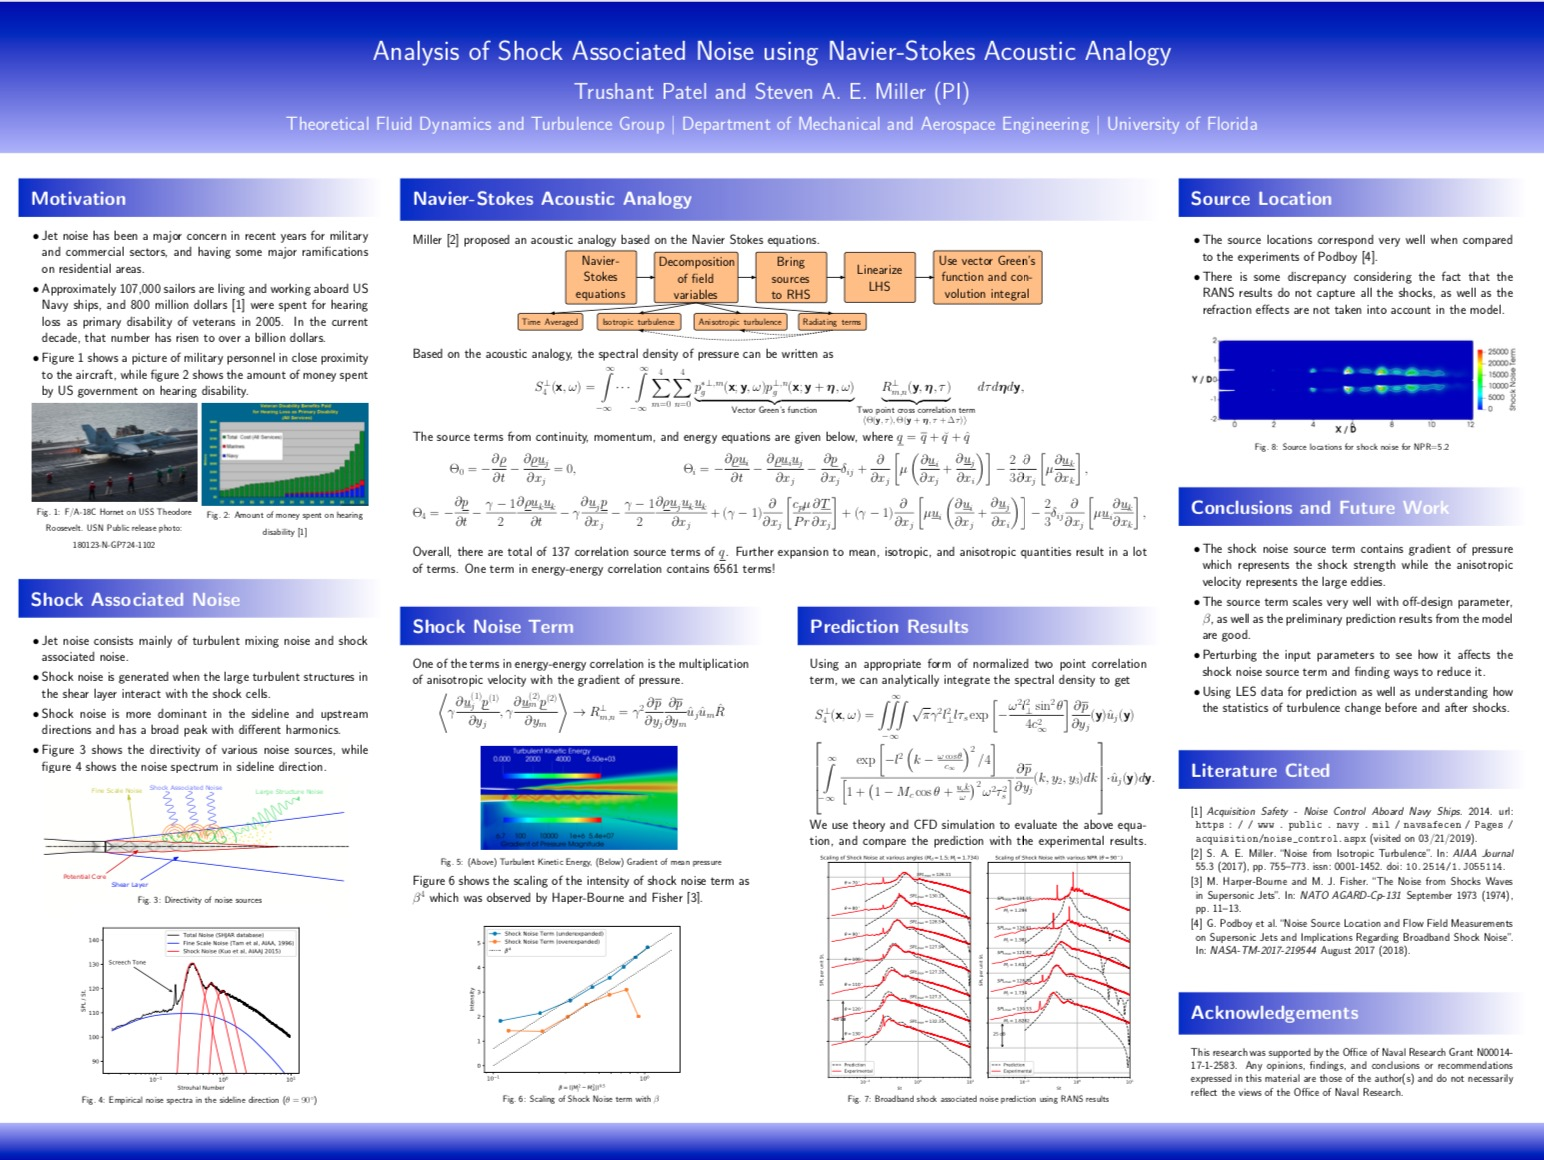 Posters - Theoretical Fluid Dynamics and Turbulence Group